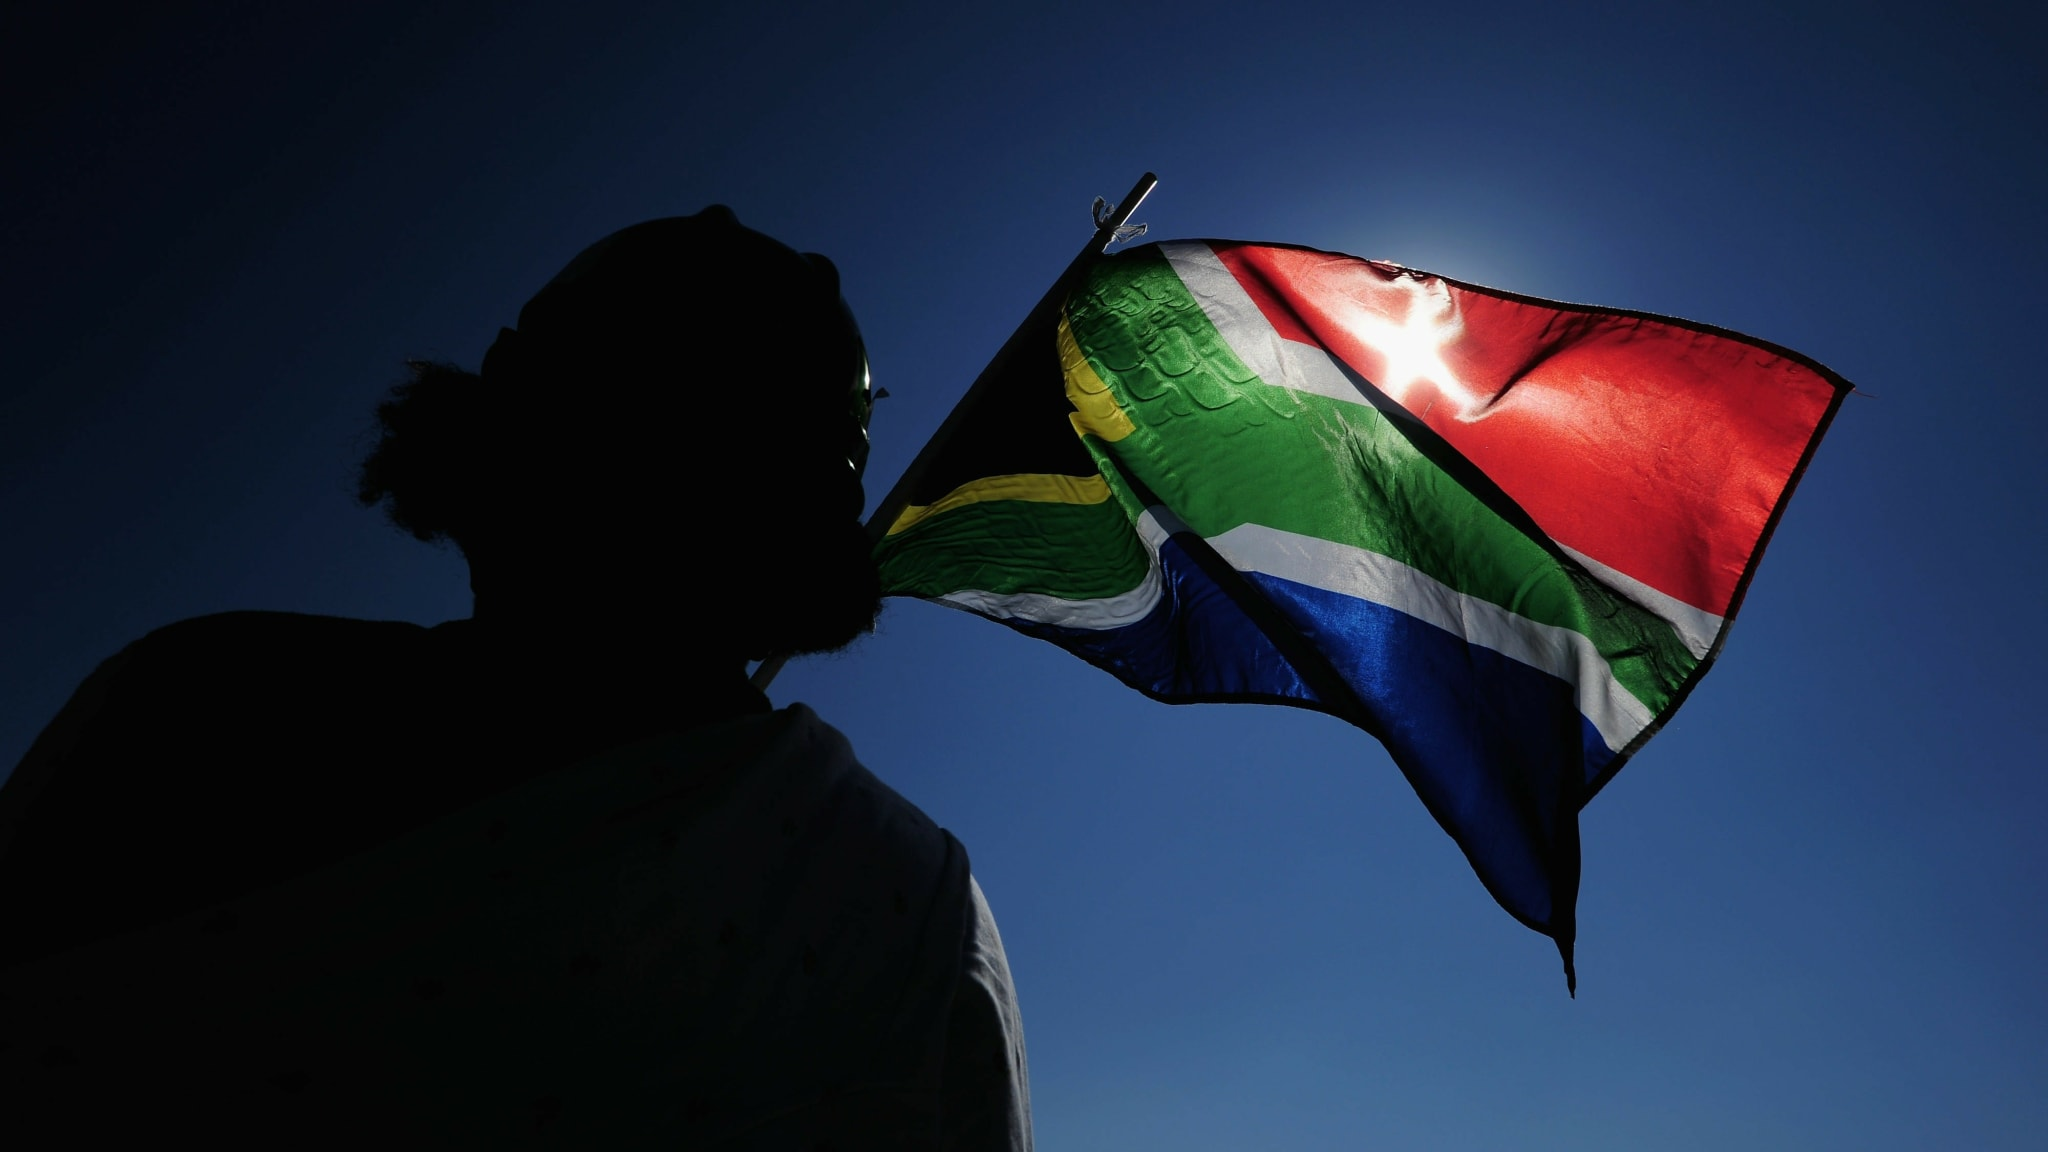 A South Africa flag is waved ahead of the 2010 FIFA World Cup South Africa Group C match between Algeria and Slovenia at the Peter Mokaba Stadium on June 13, 2010 in Polokwane, South Africa.